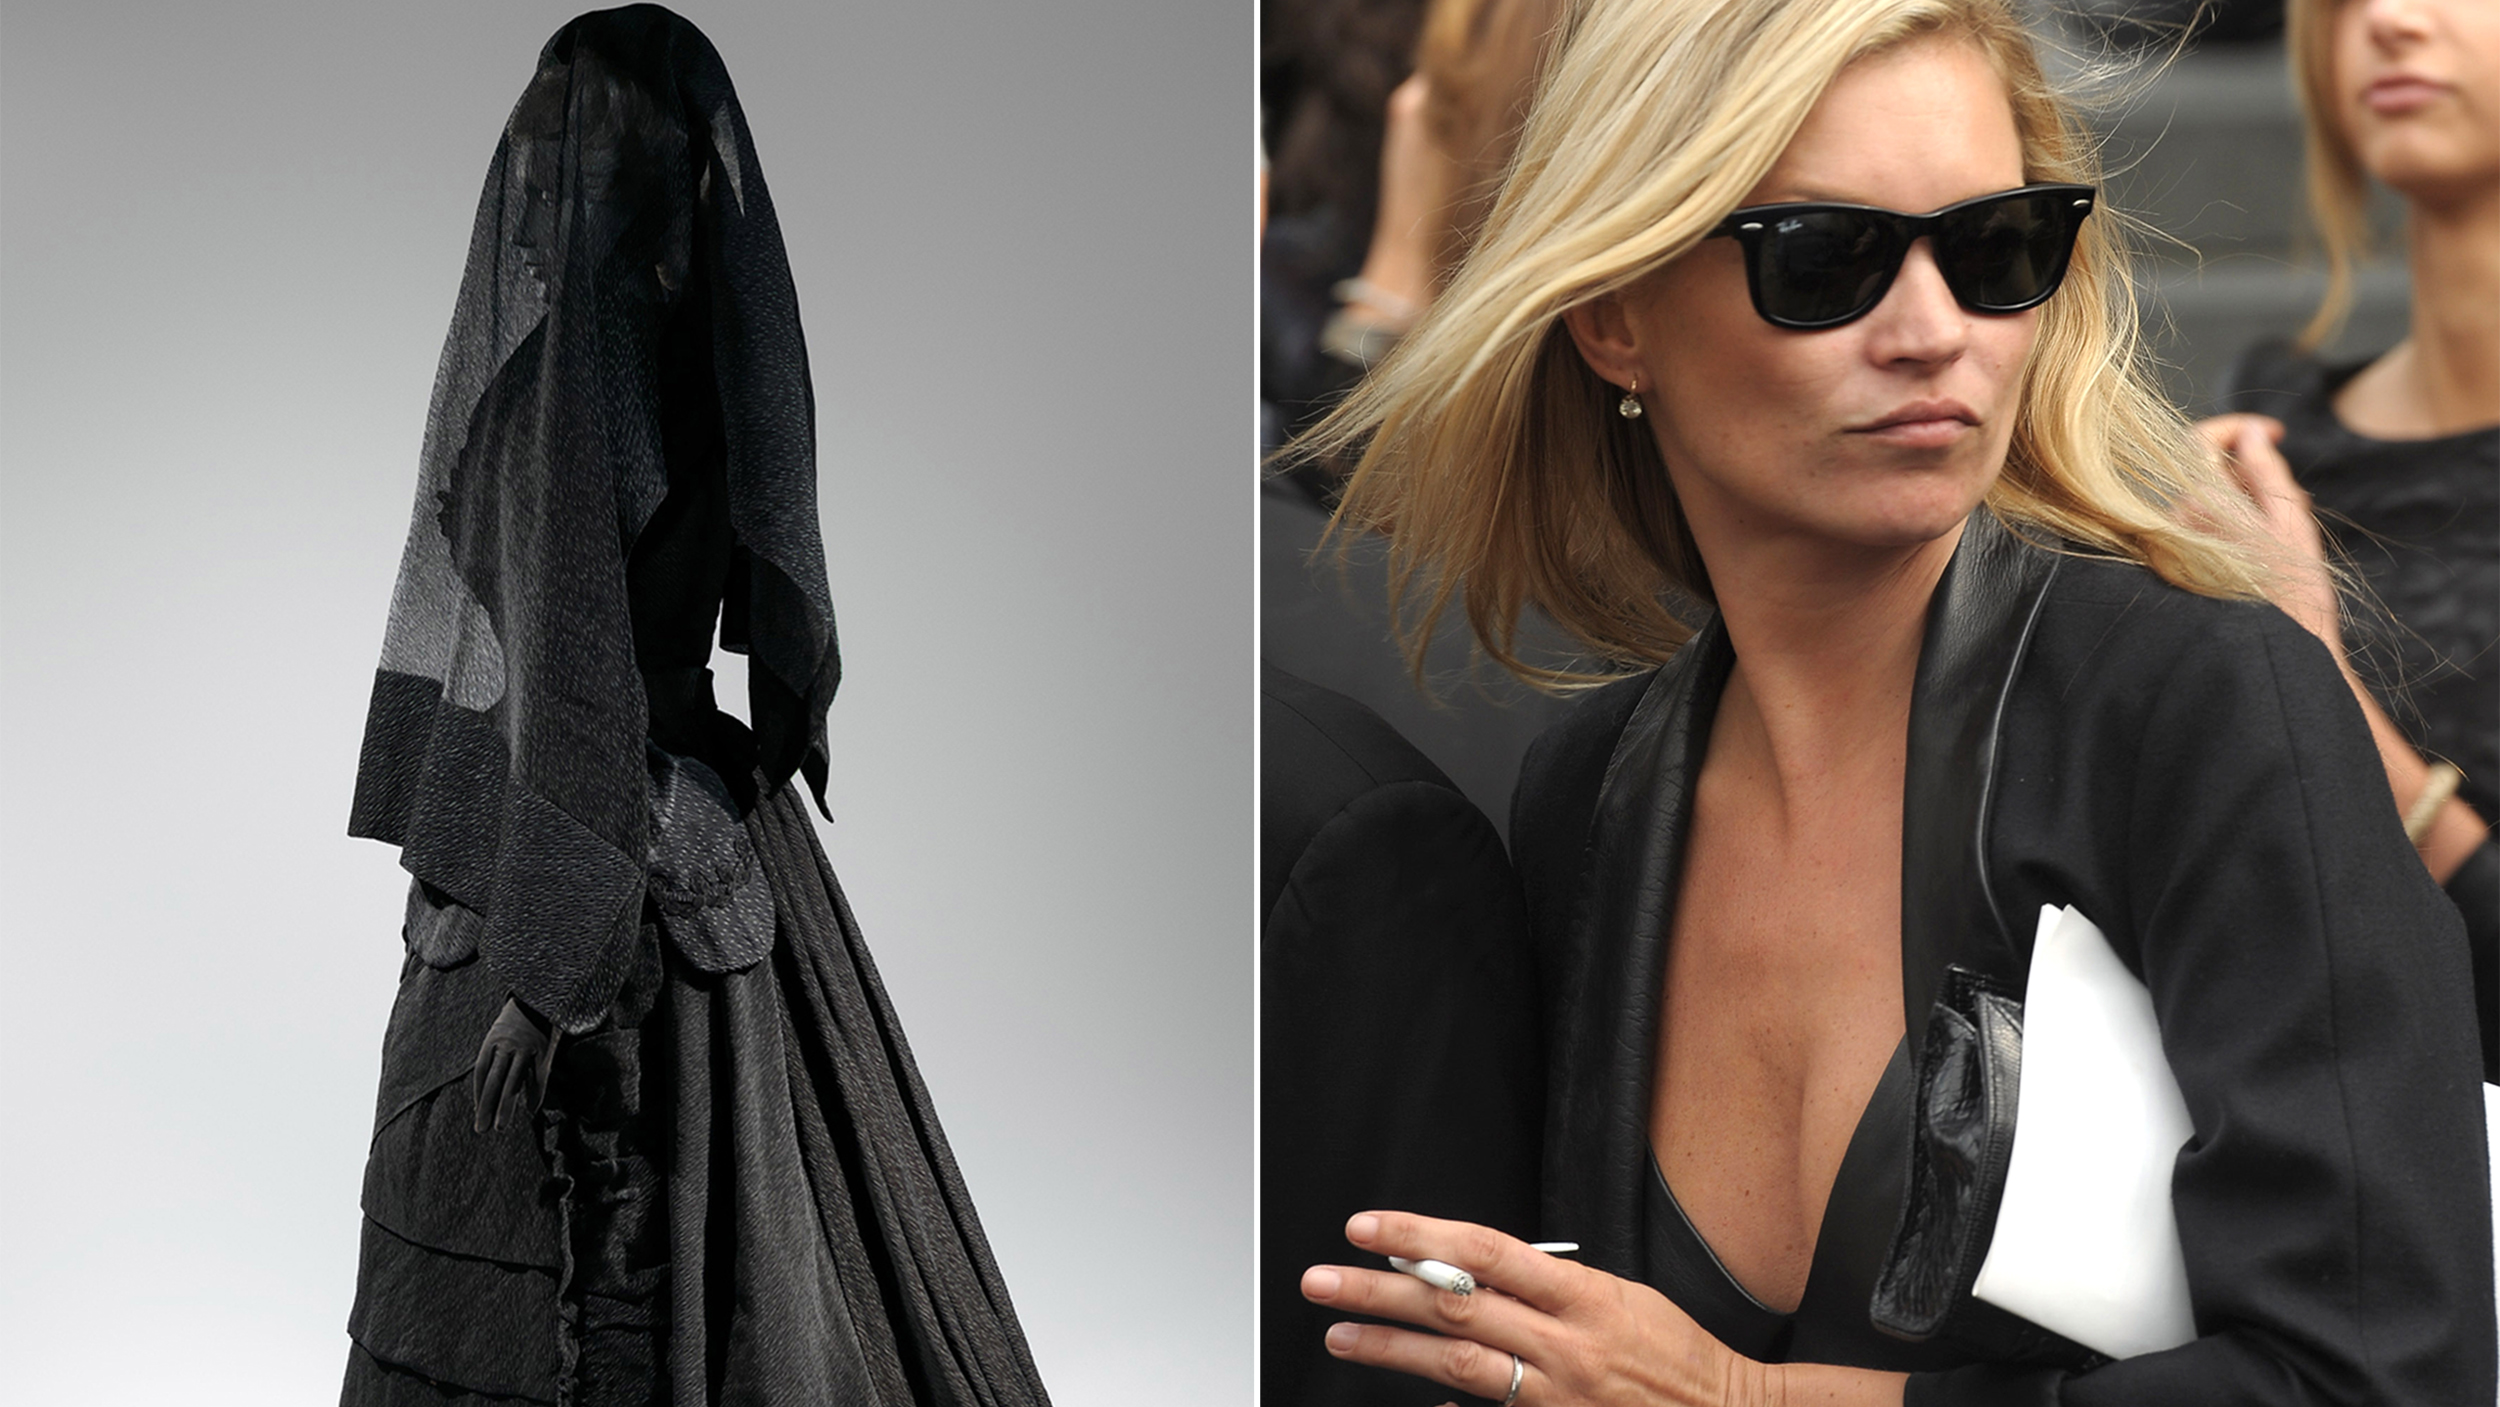 Funeral Fashion The Evolution Of Mourning Attire